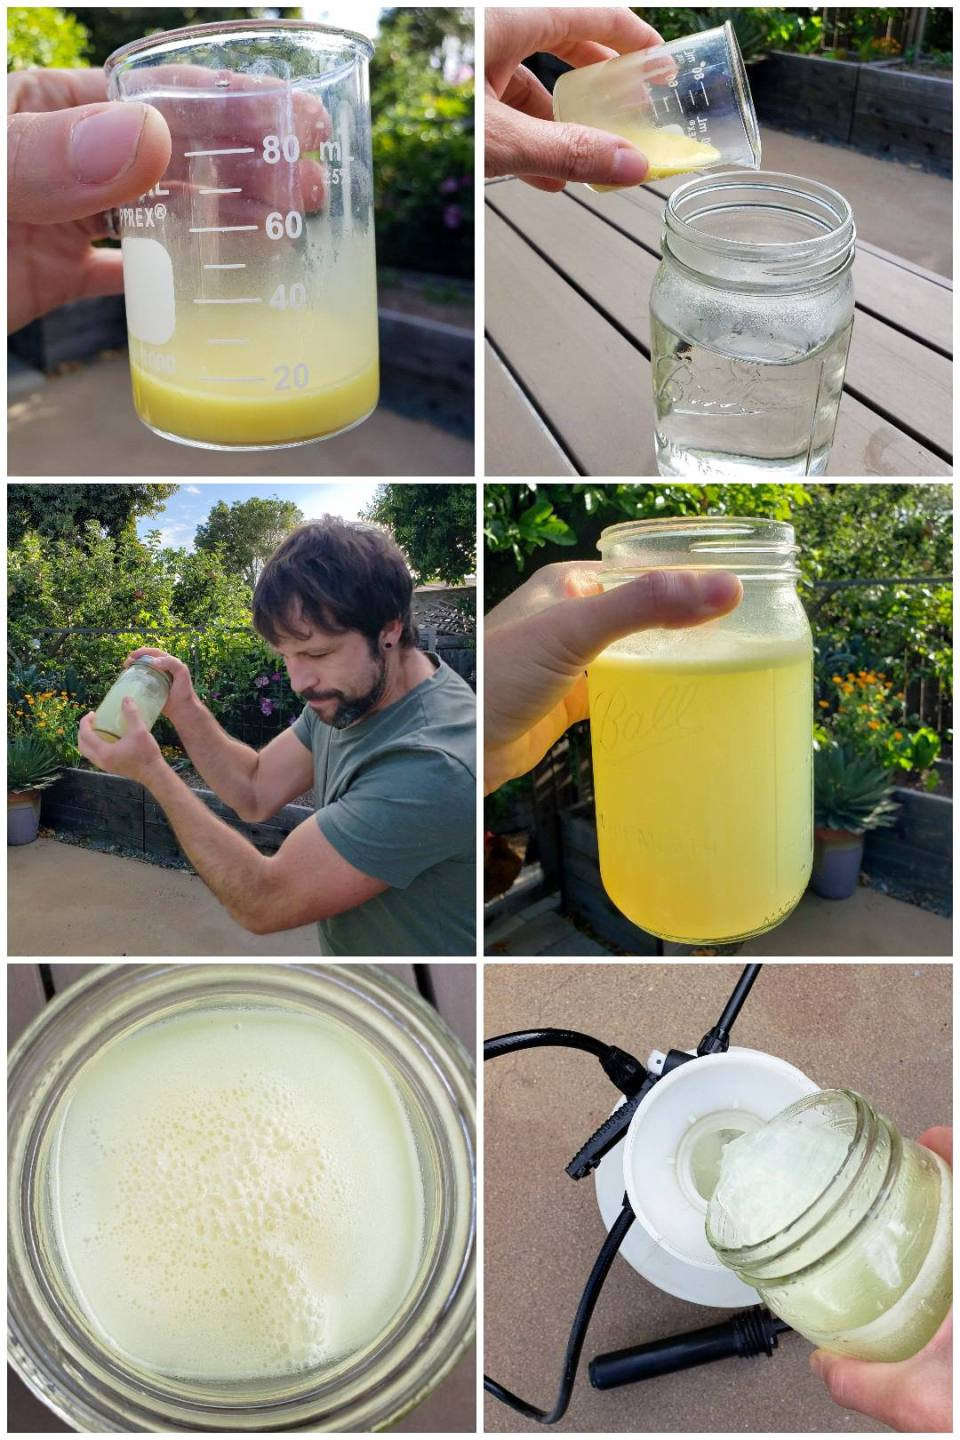 A six part collage, showing the silica/neem oil in the beaker being added to a quart of warm water, it is then capped with a lid and shaken repeatedly to emulsify the neem oil in the water. It is then added to a larger quantity of water in a spray canister, where it can now be used as cannabis pest control in the garden.